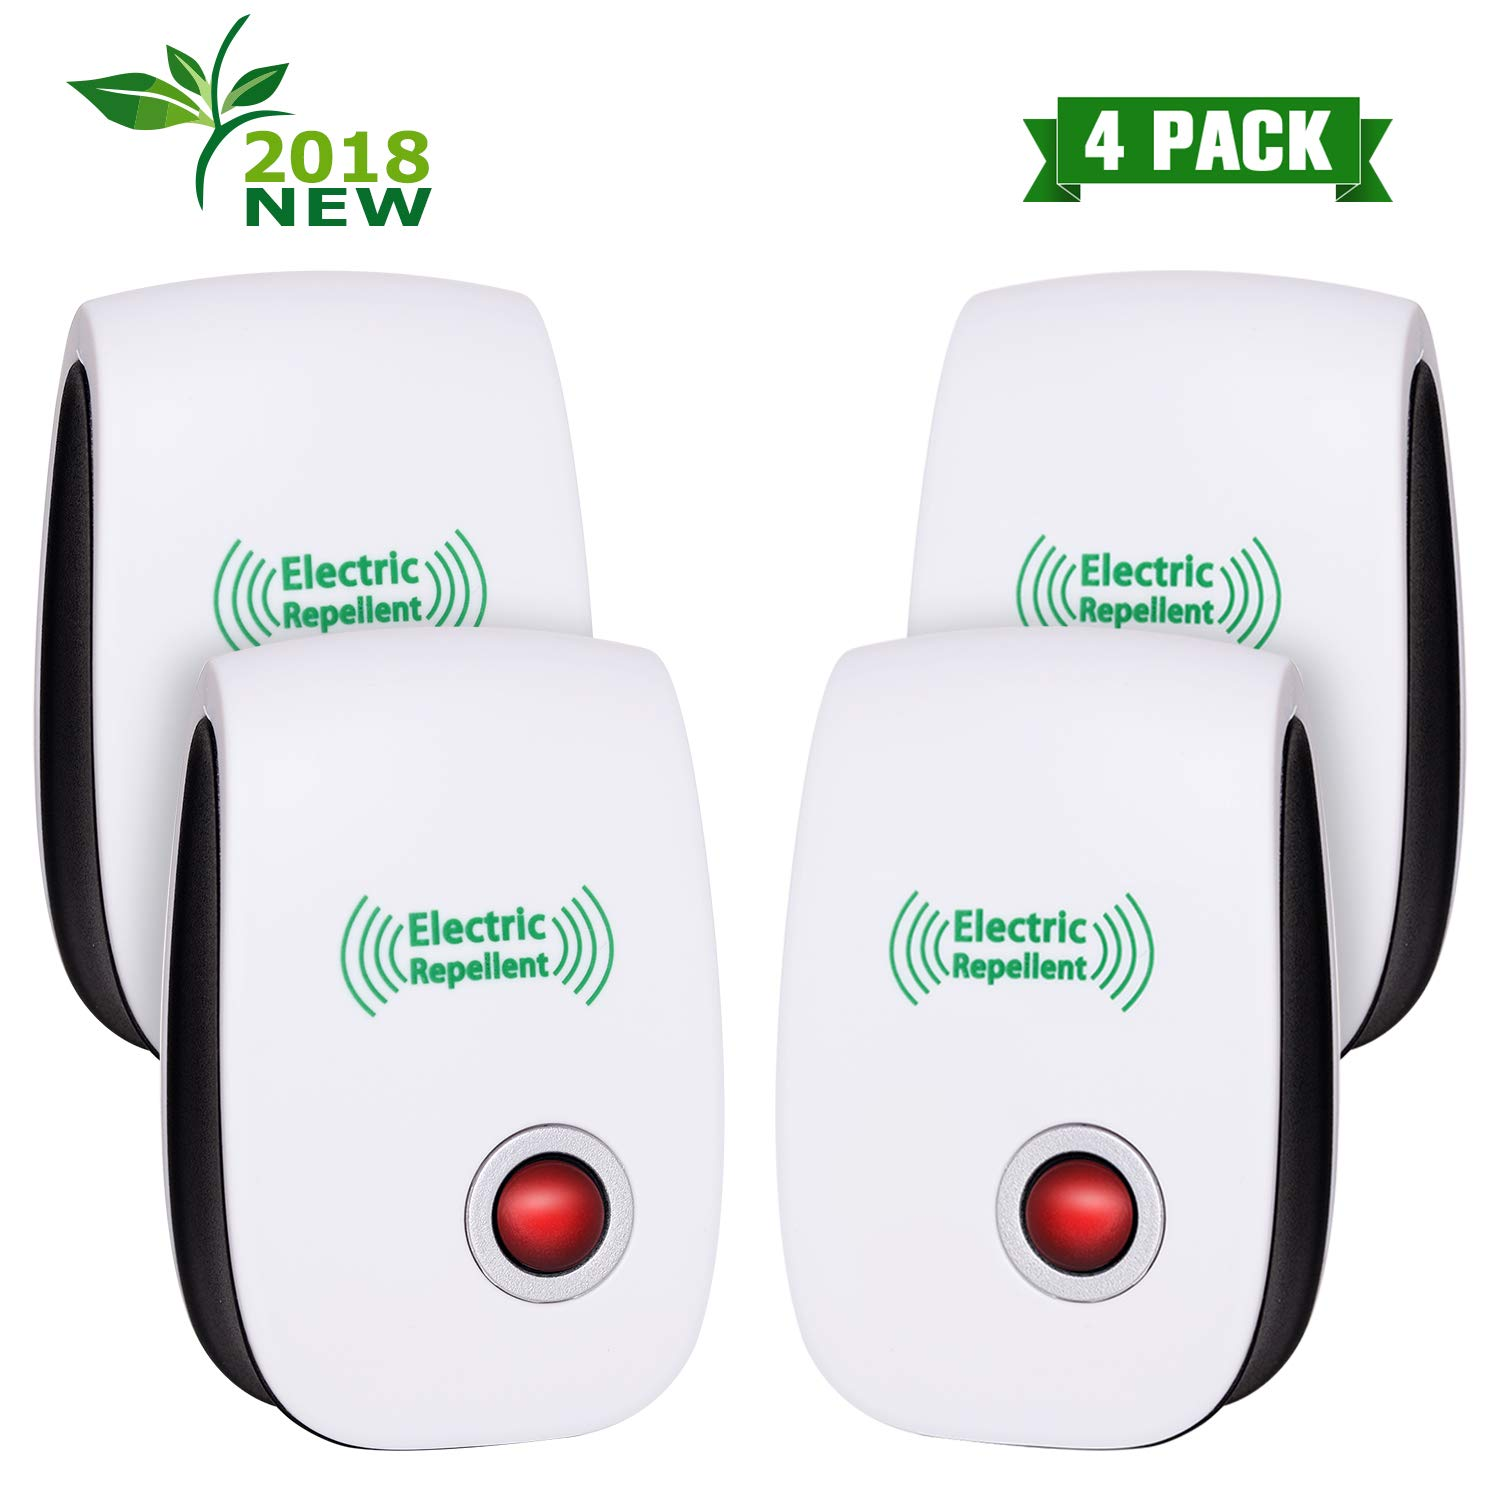 VEPOWER [2018 Upgraded] Ultrasonic Pest Repellent Electronic Mice Repeller, Plug in for Bugs and Insects Mice Ant Mosquito Spider Rodent Roach Child and Pets Safe Control (4 Packs) by VEPOWER